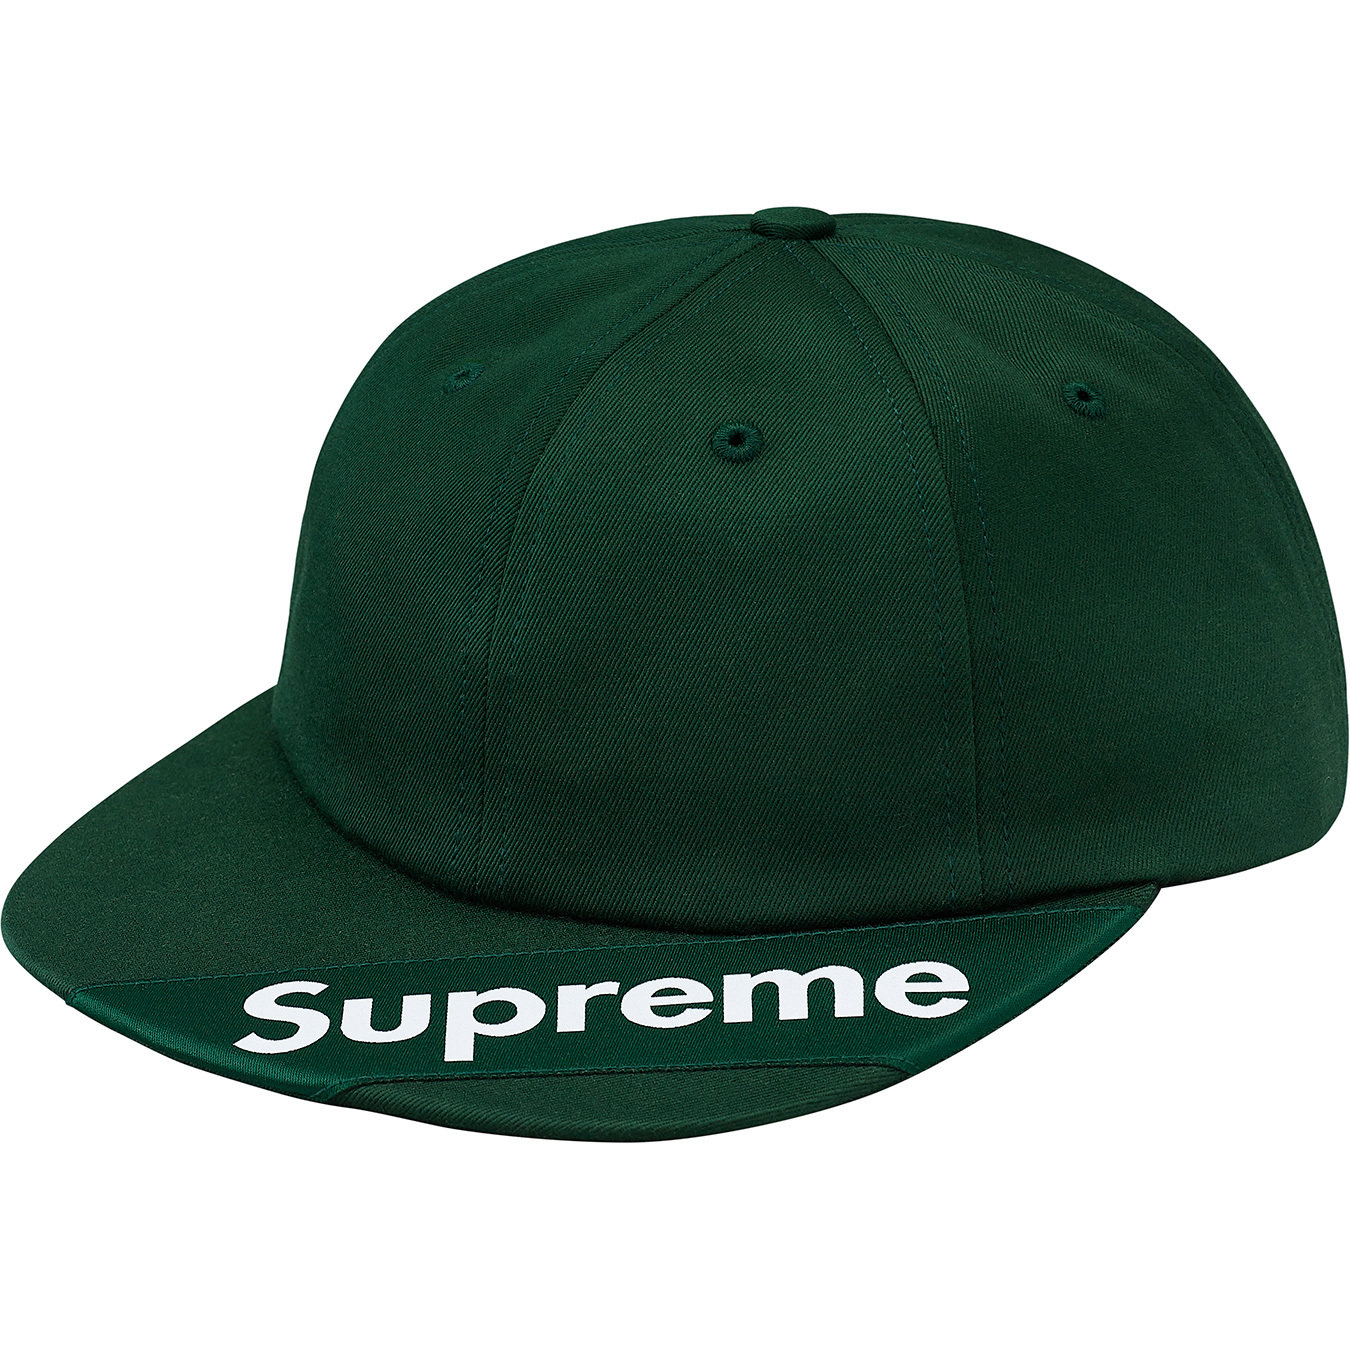 supreme-18ss-spring-summer-visor-label-6-panel